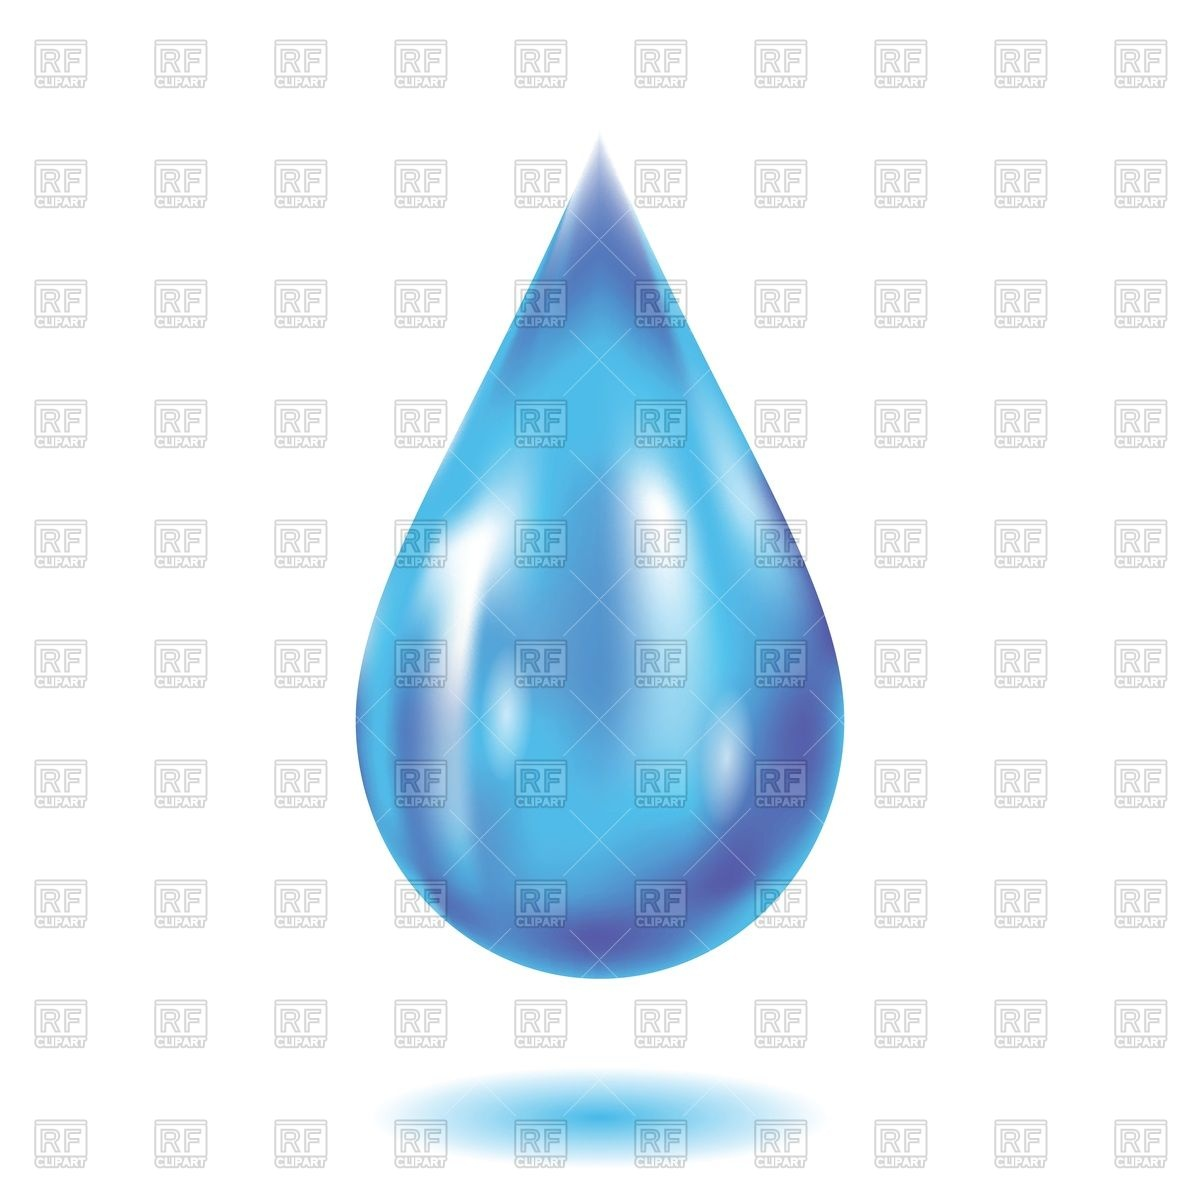 Drop Of Water Clipart | Free download best Drop Of Water Clipart on